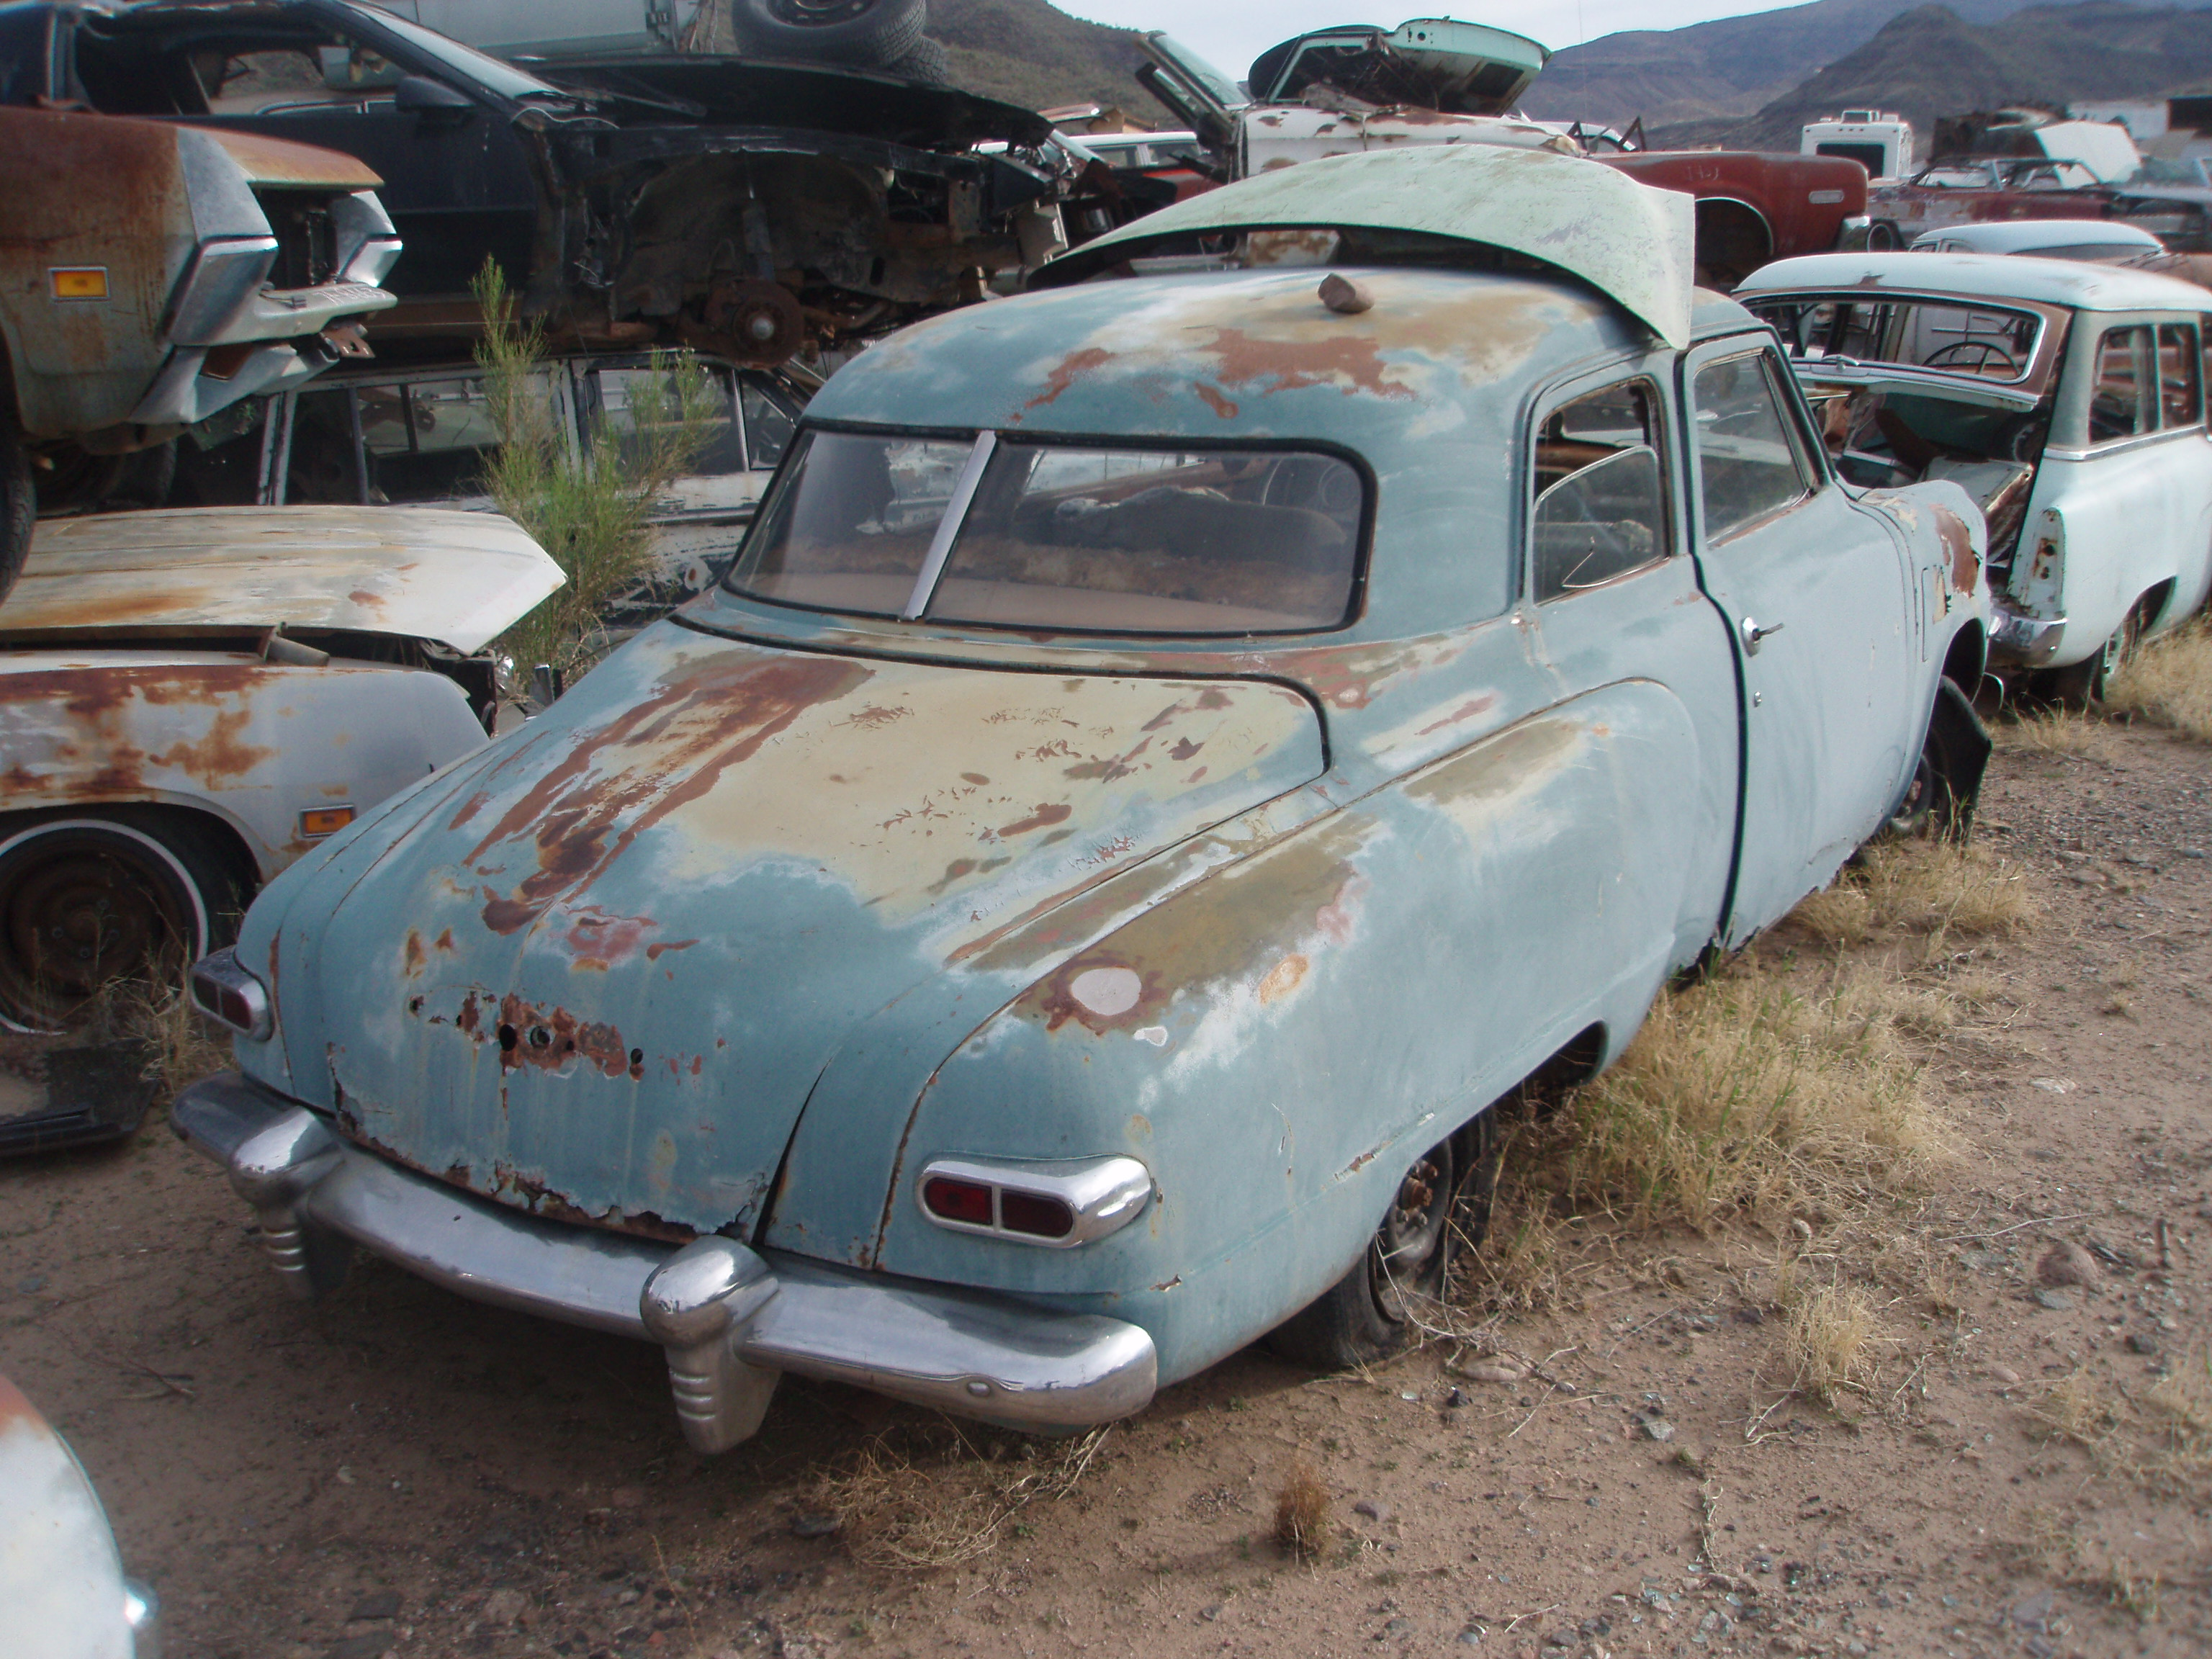 Salvage Project Cars For Sale Autos Post